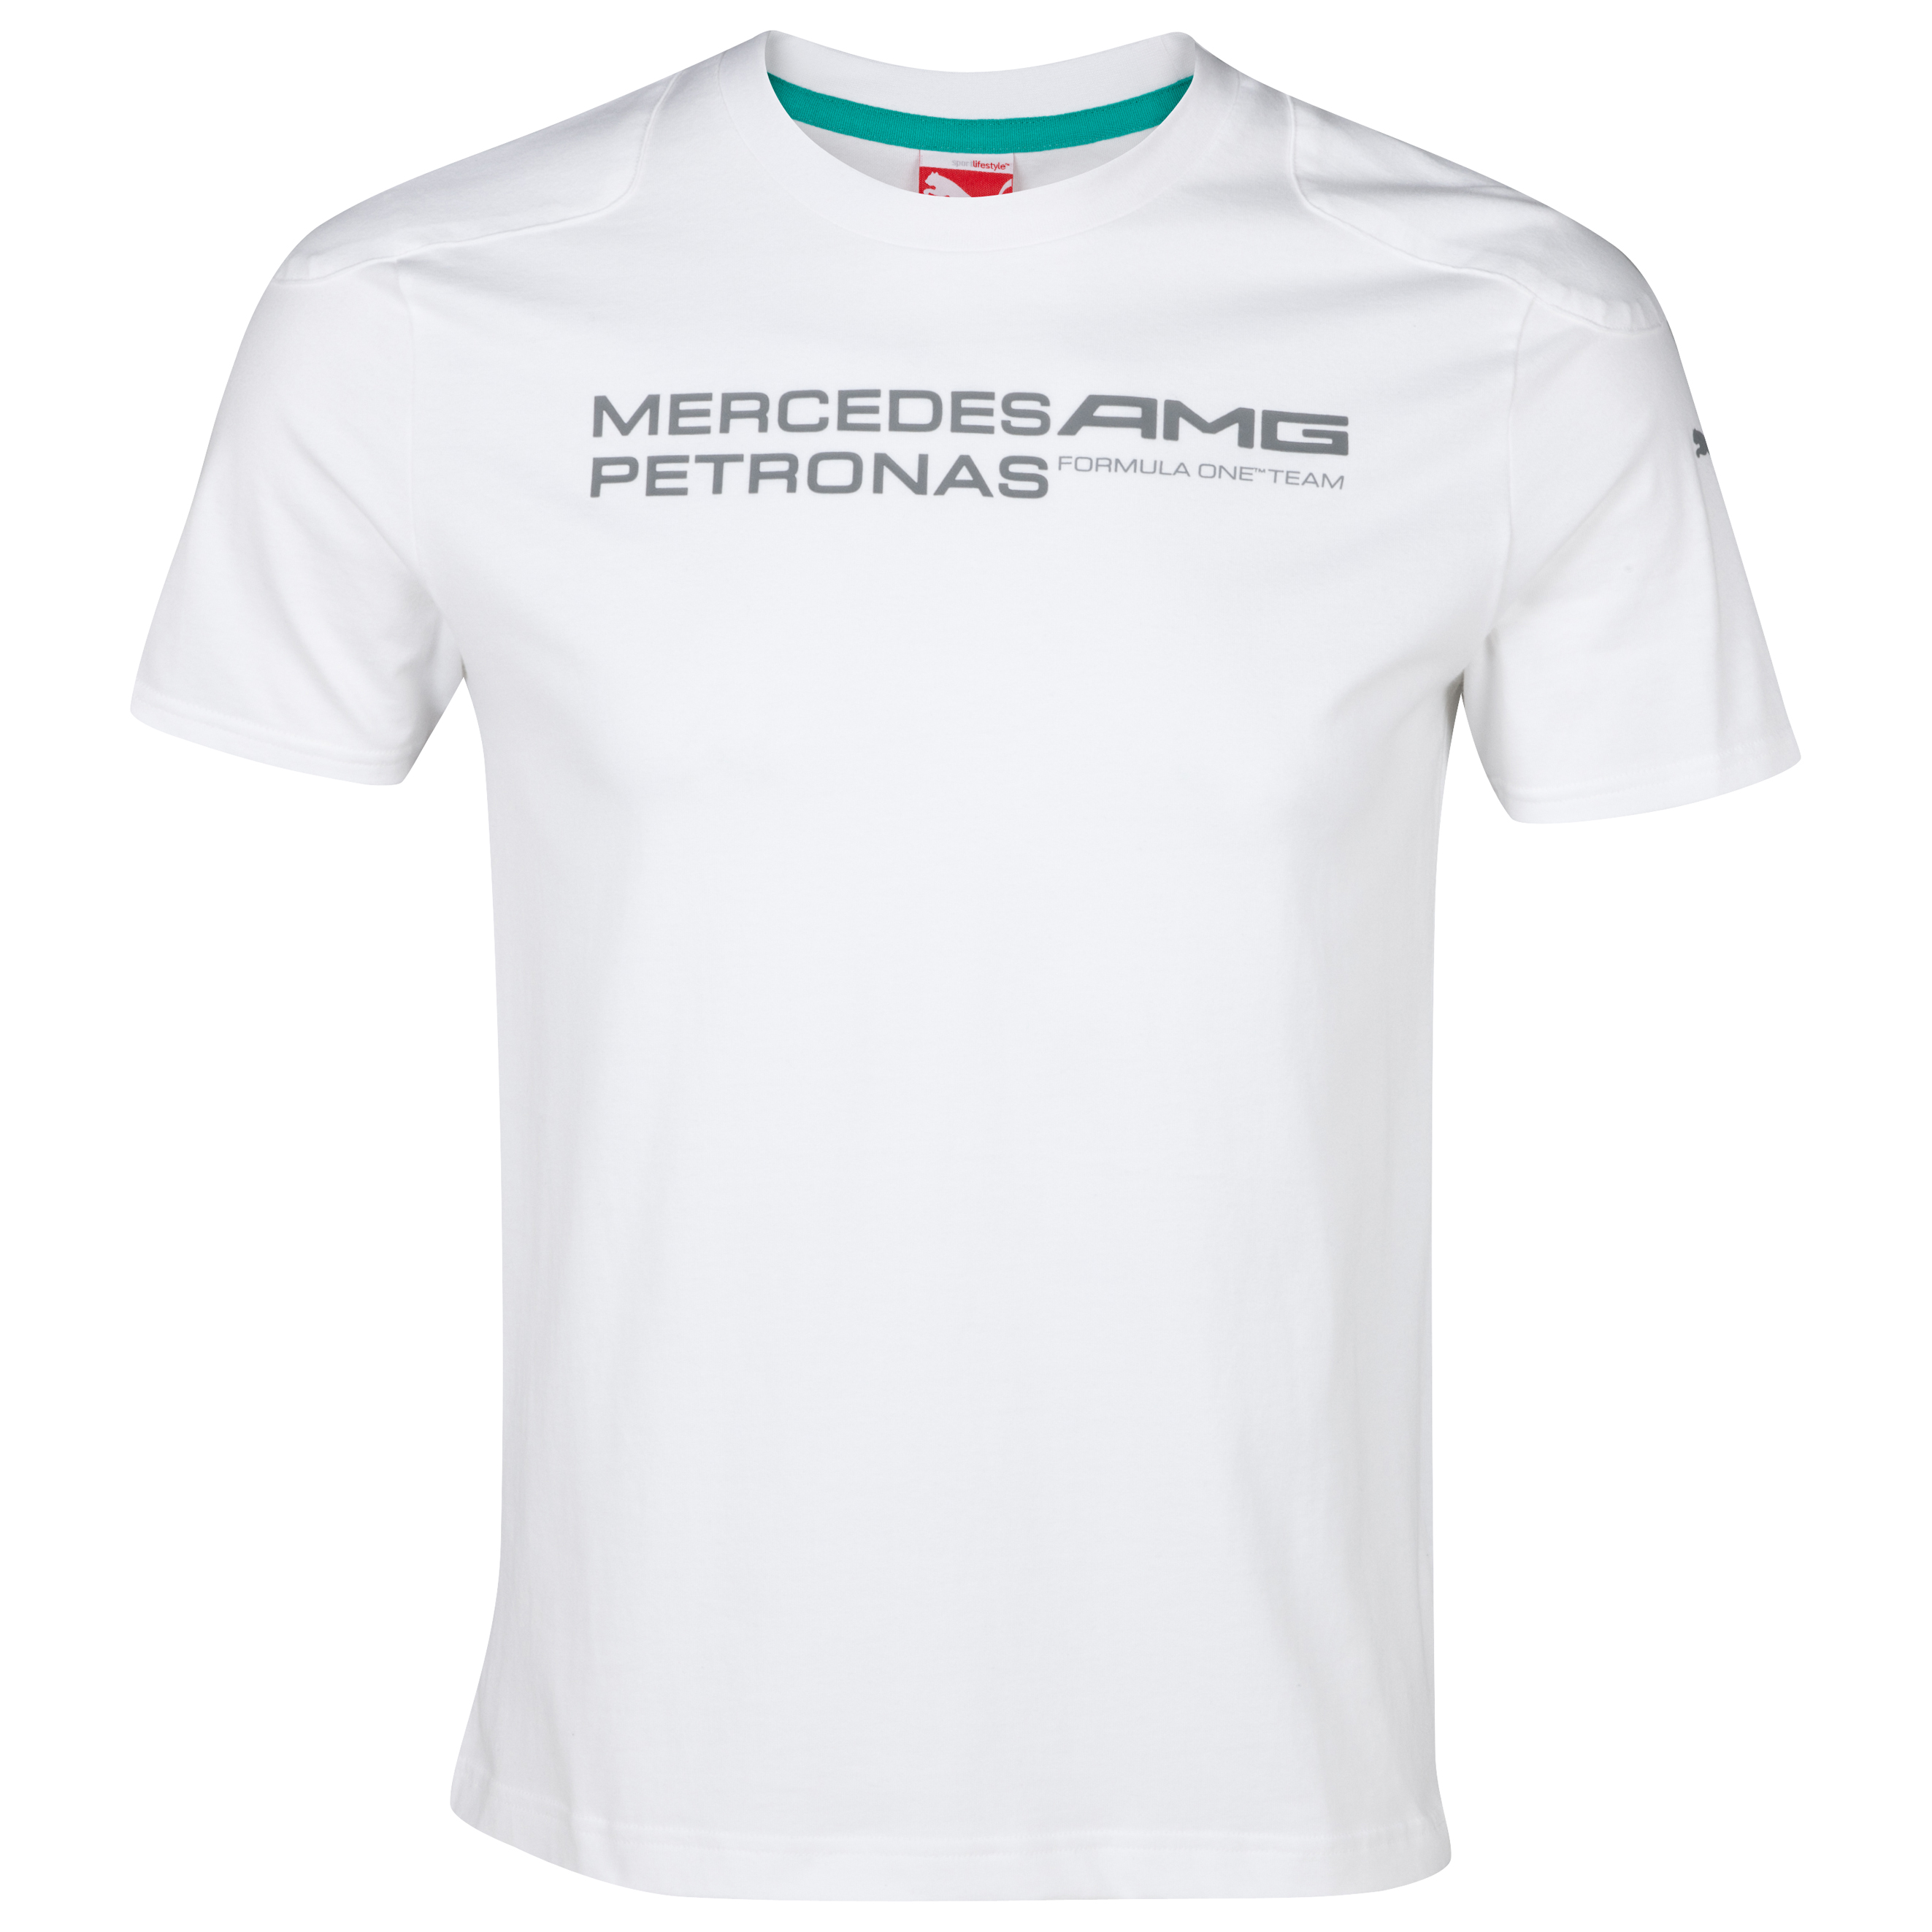 Mercedes AMG Petronas 2013 Team Logo T-Shirt - White